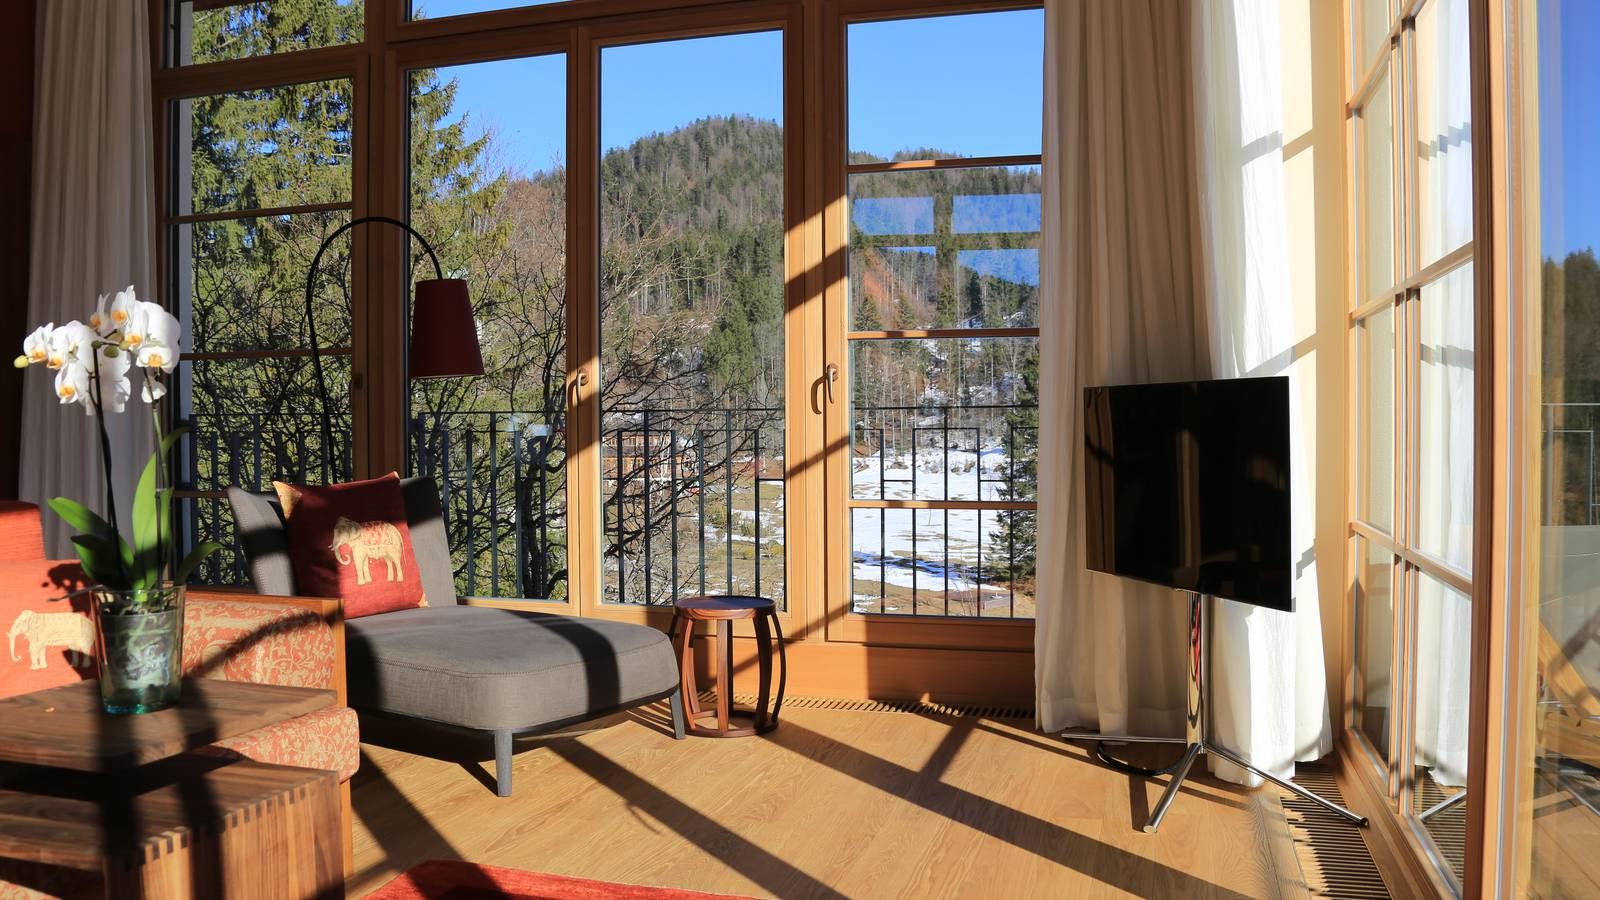 Lichteinfall in einer Suite im Schloss Elmau Luxury Spa Retreat